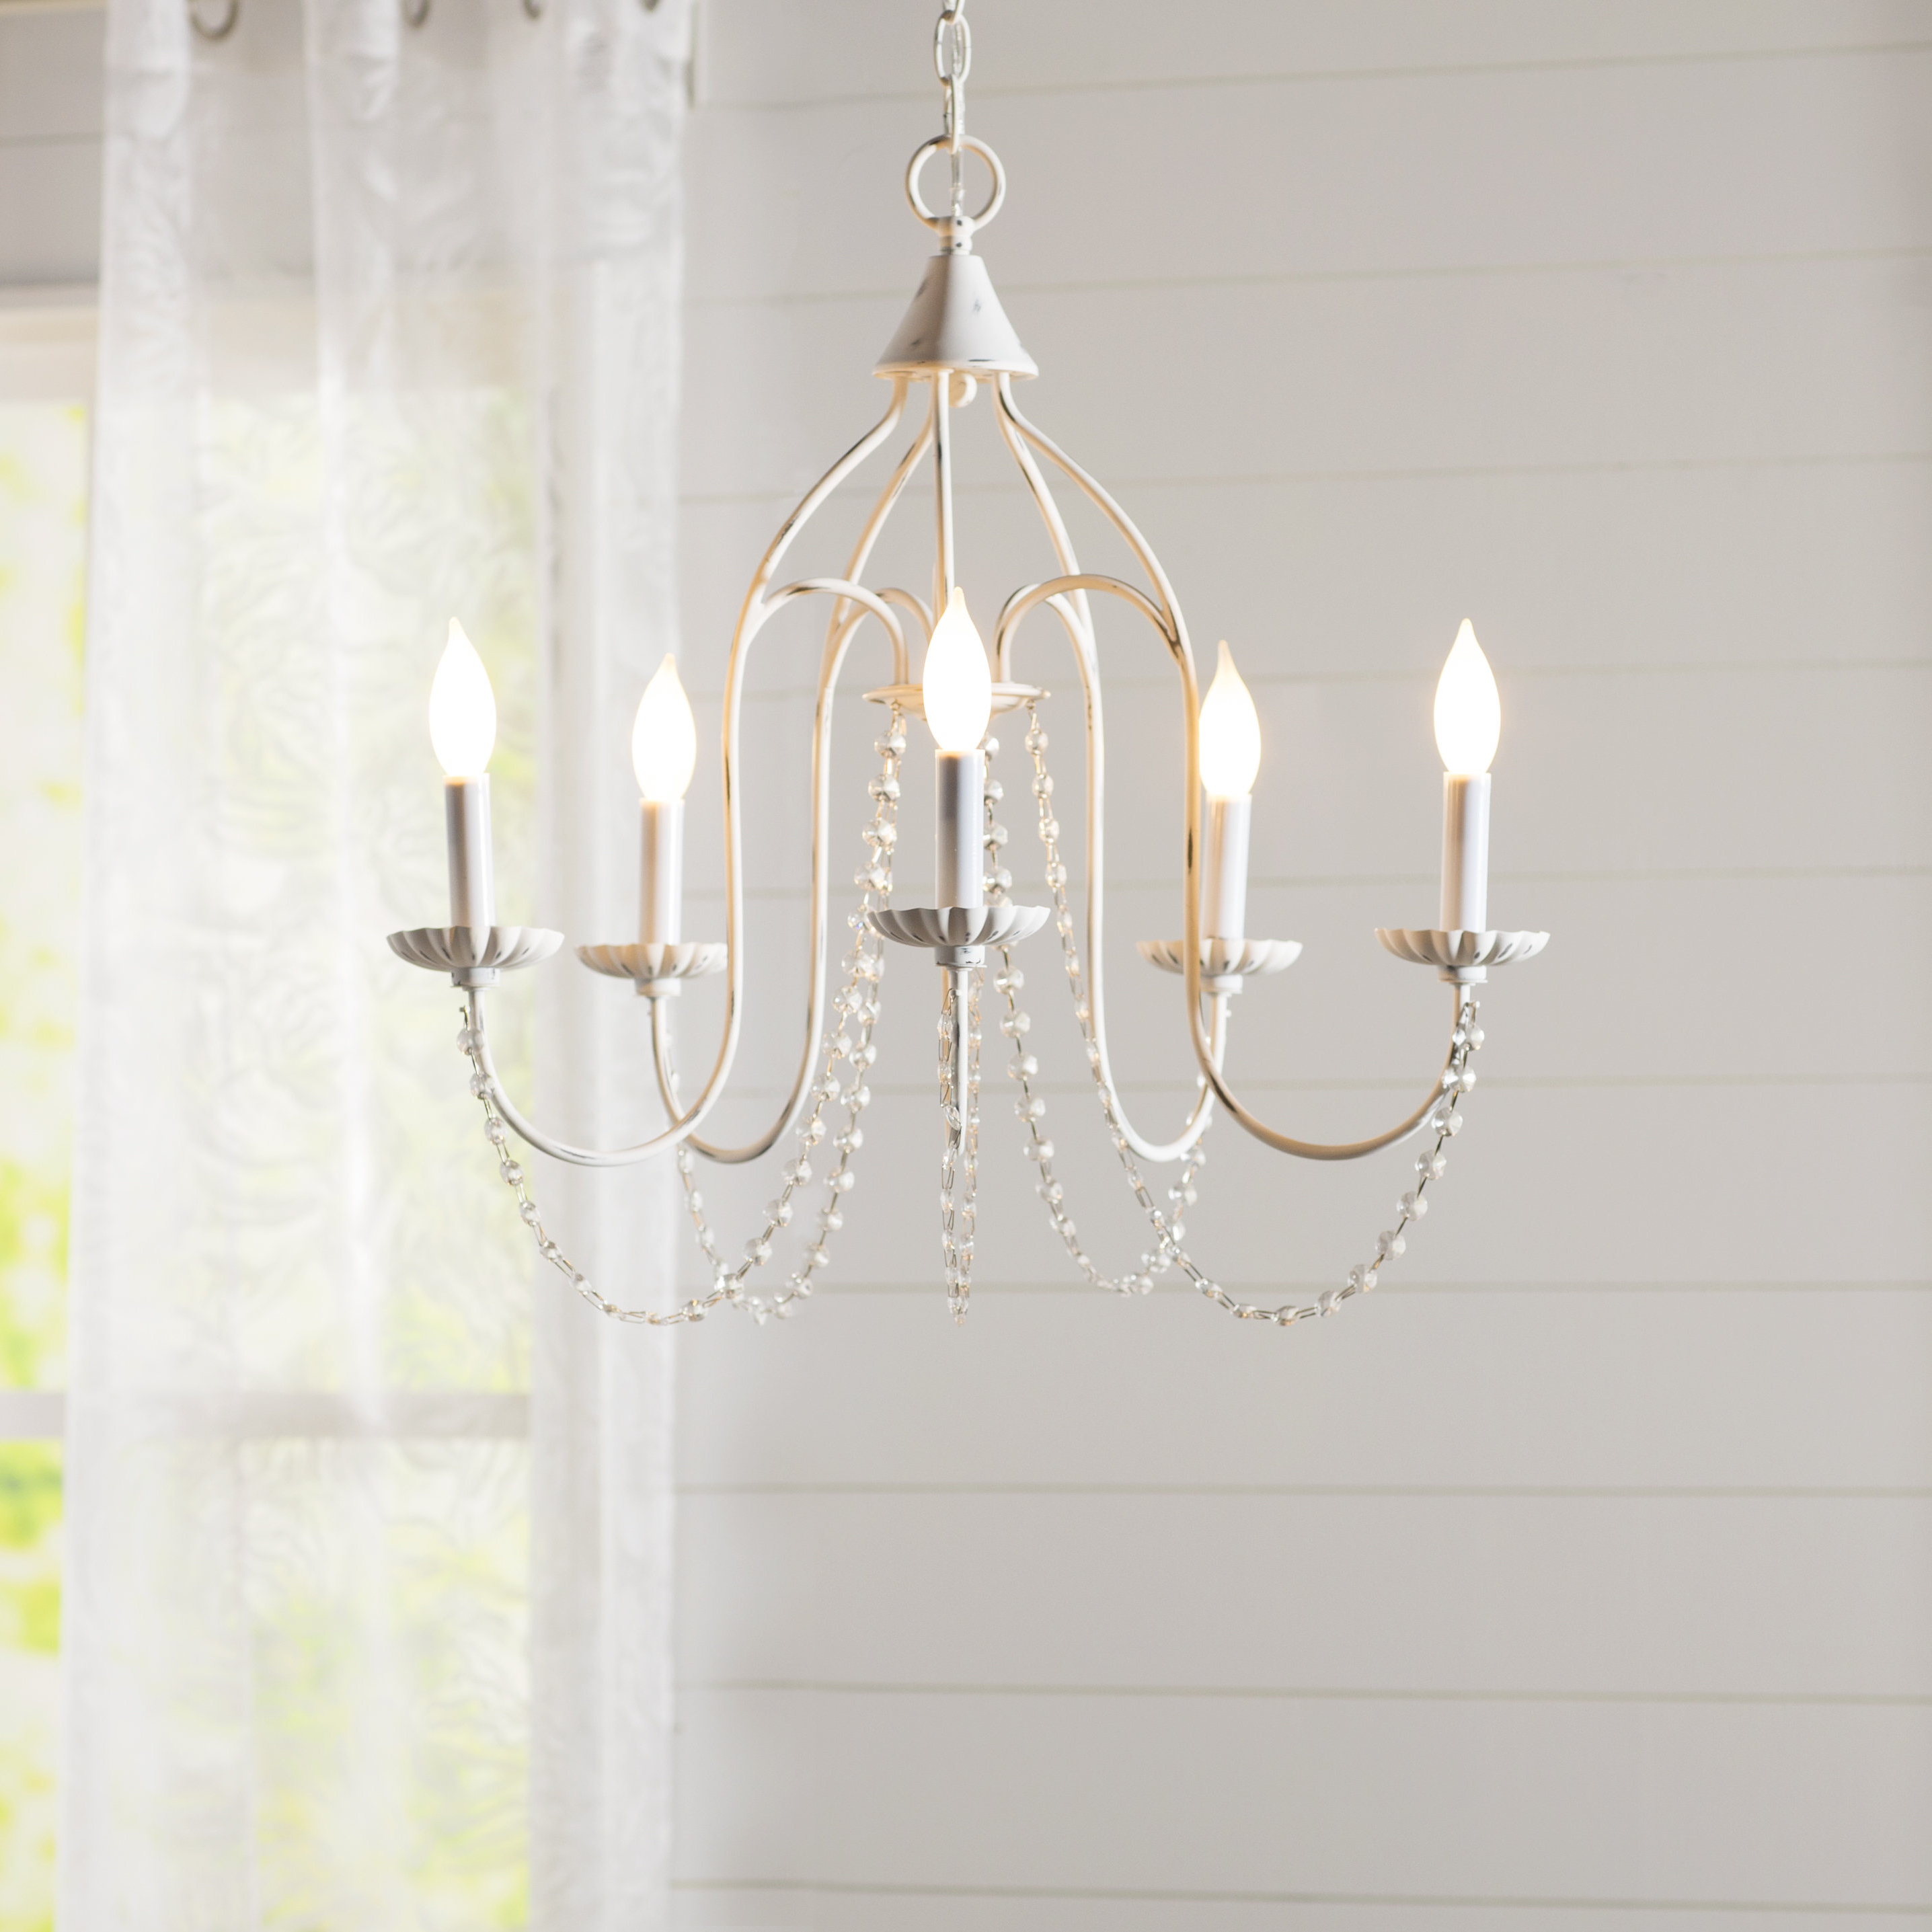 Best And Newest Blanchette 5 Light Candle Style Chandeliers Throughout Florentina 5 Light Candle Style Chandelier (View 5 of 20)